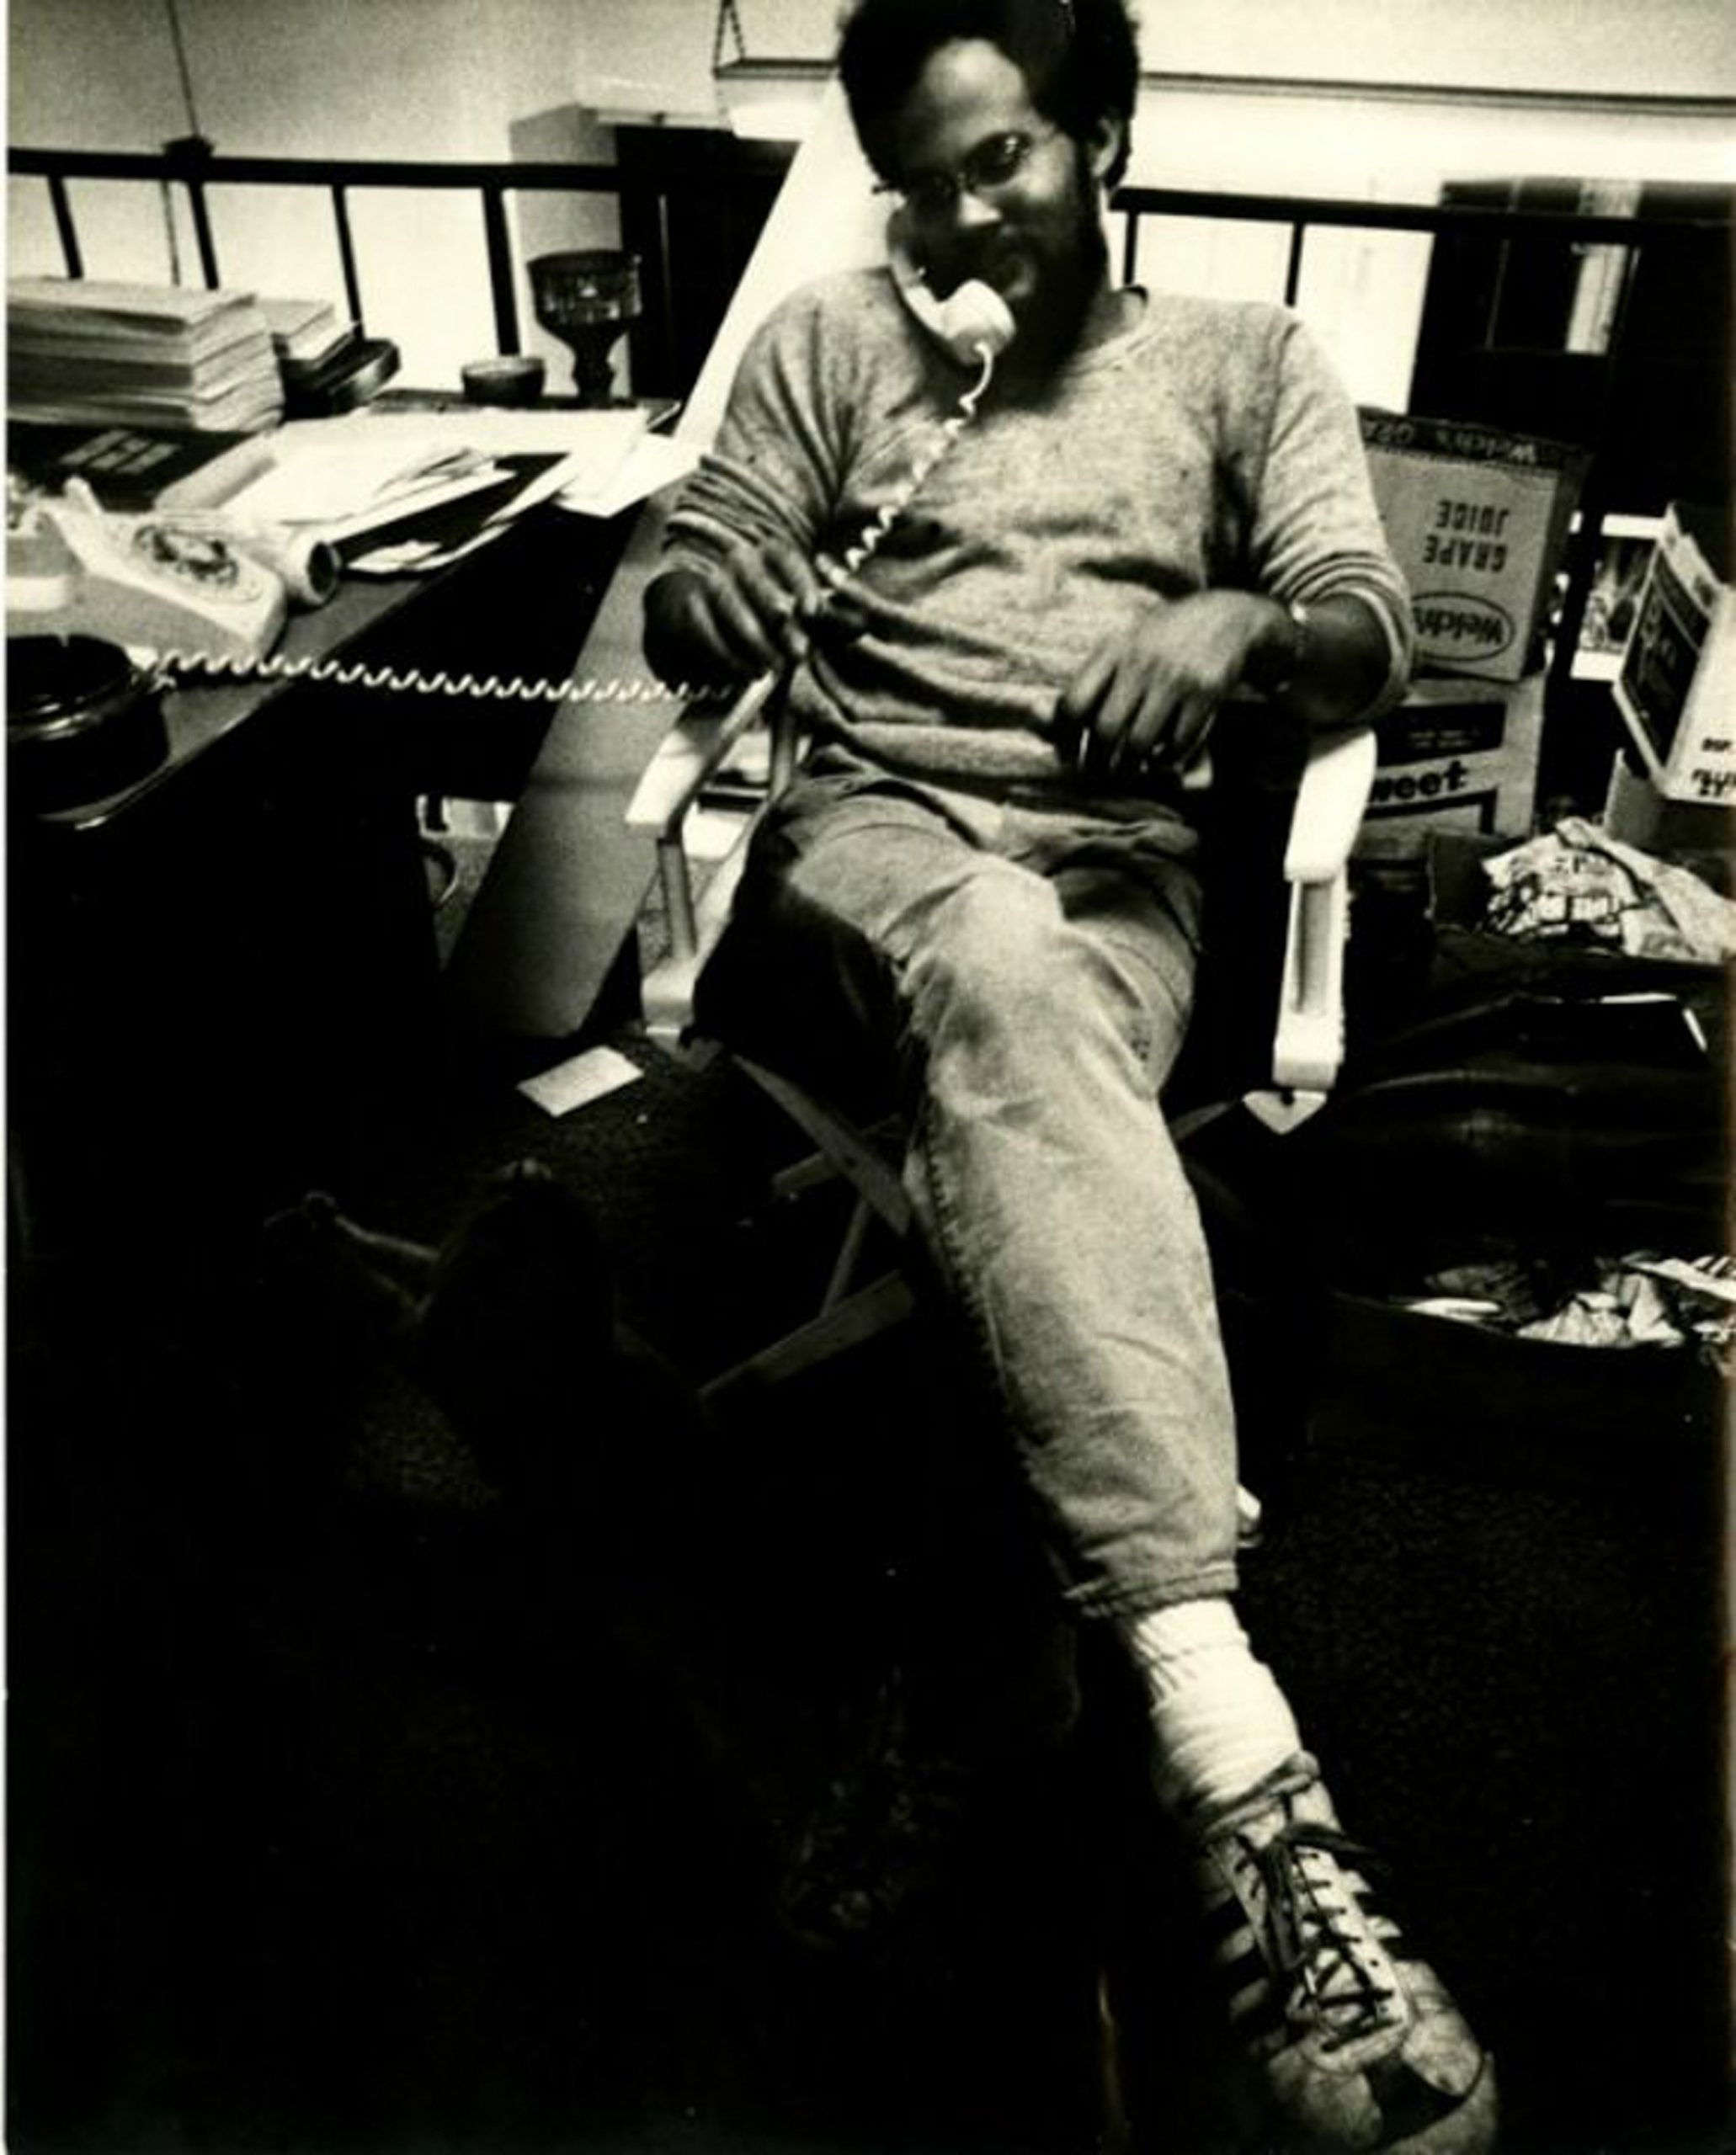 Dale B. Davis working at Brockman Gallery, Los Angeles, CA. Photo: Courtesy of the Brockman Gallery Archive.